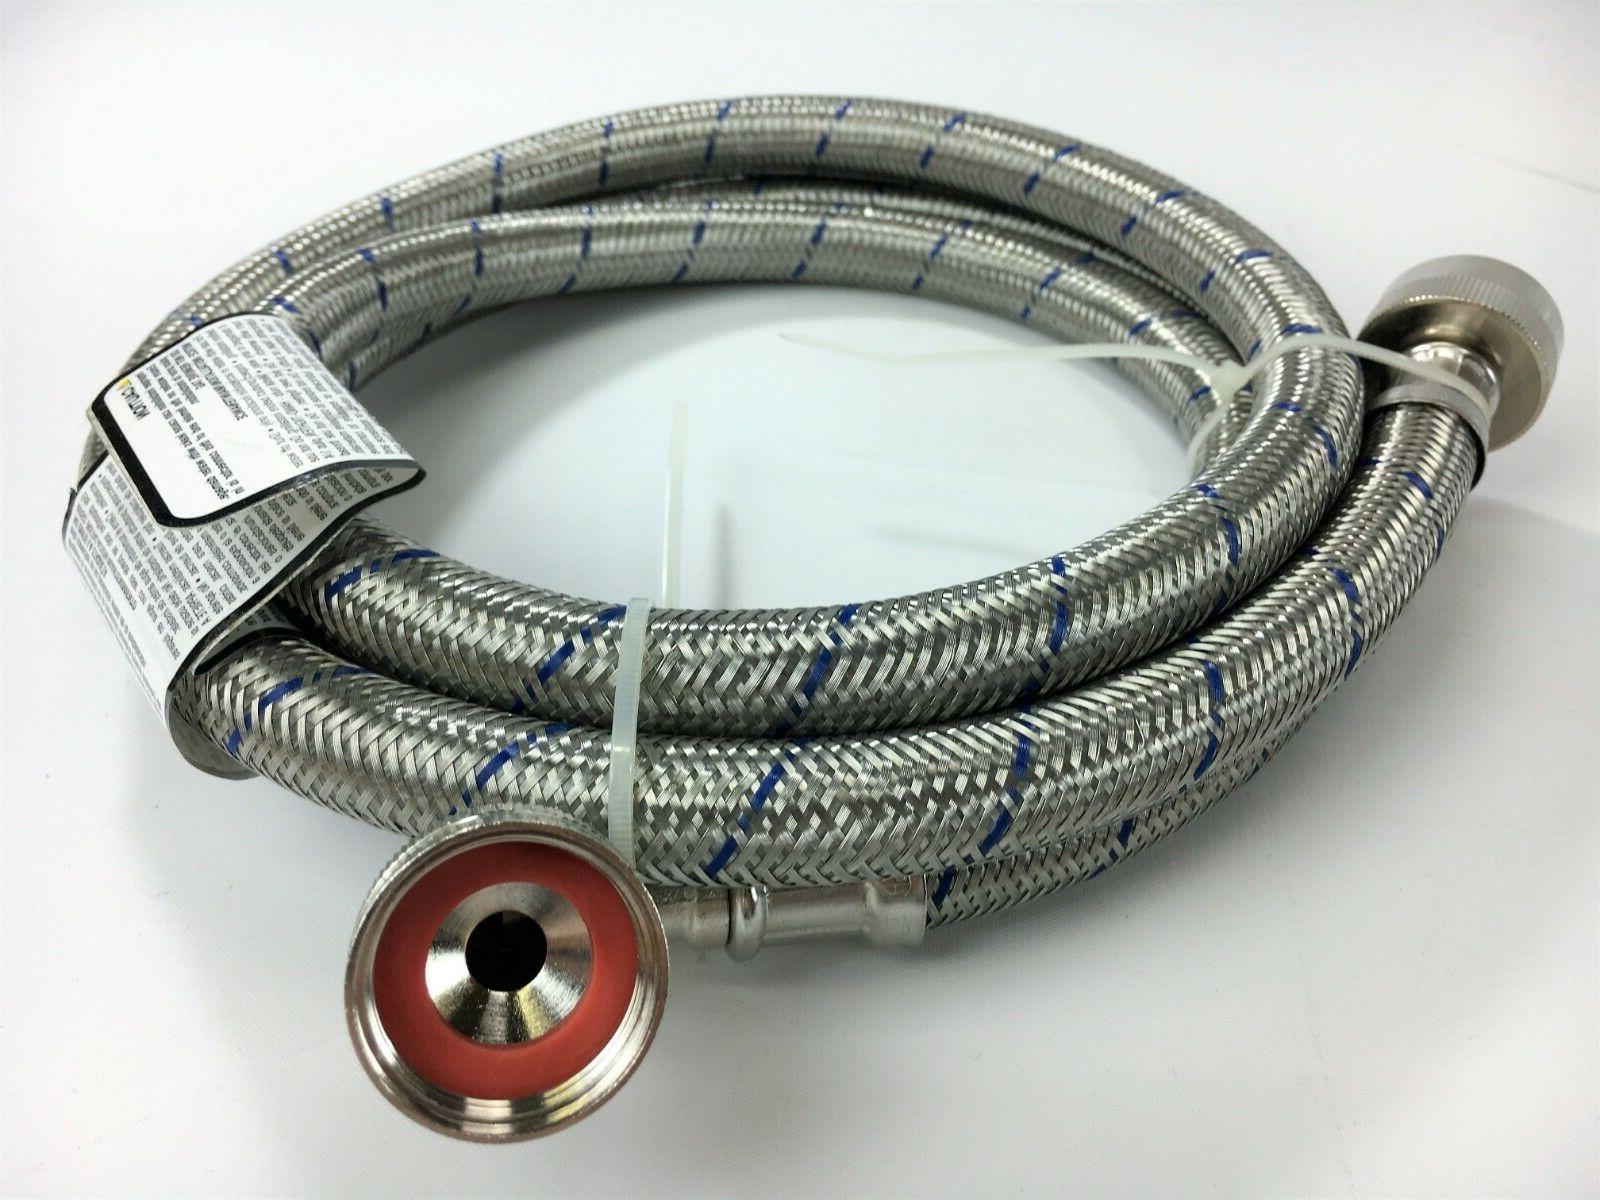 Stainless Hose 90 Elbow, 6 Ft 5304503343 NEW